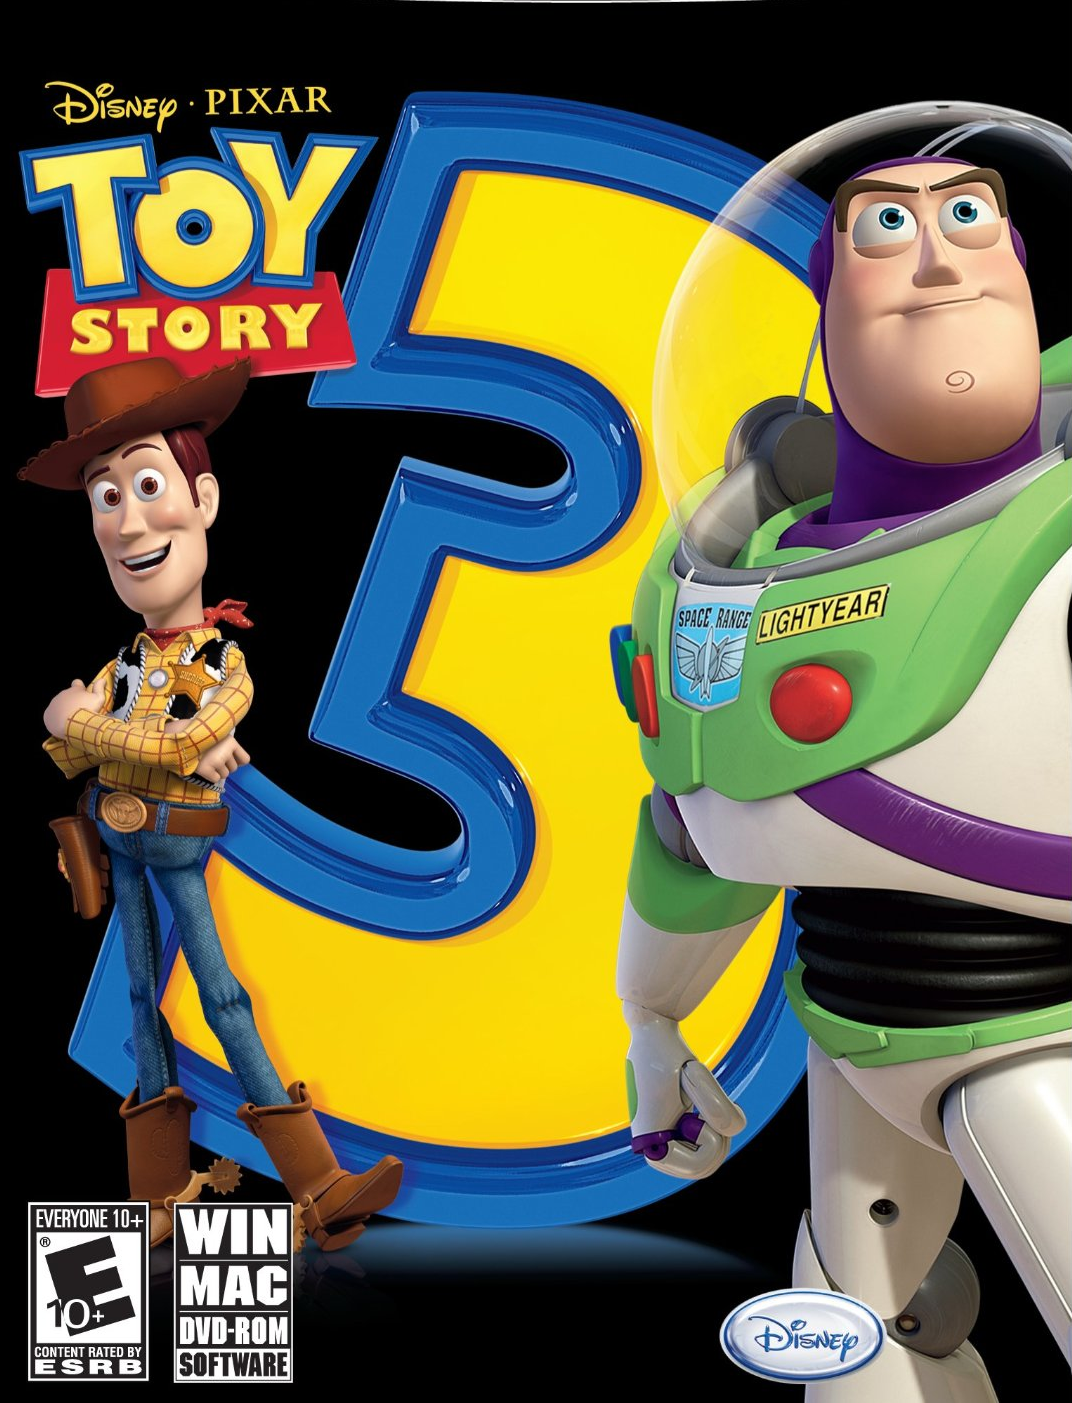 Toy Story 3: The Video Game | Pixar Wiki | FANDOM powered by Wikia